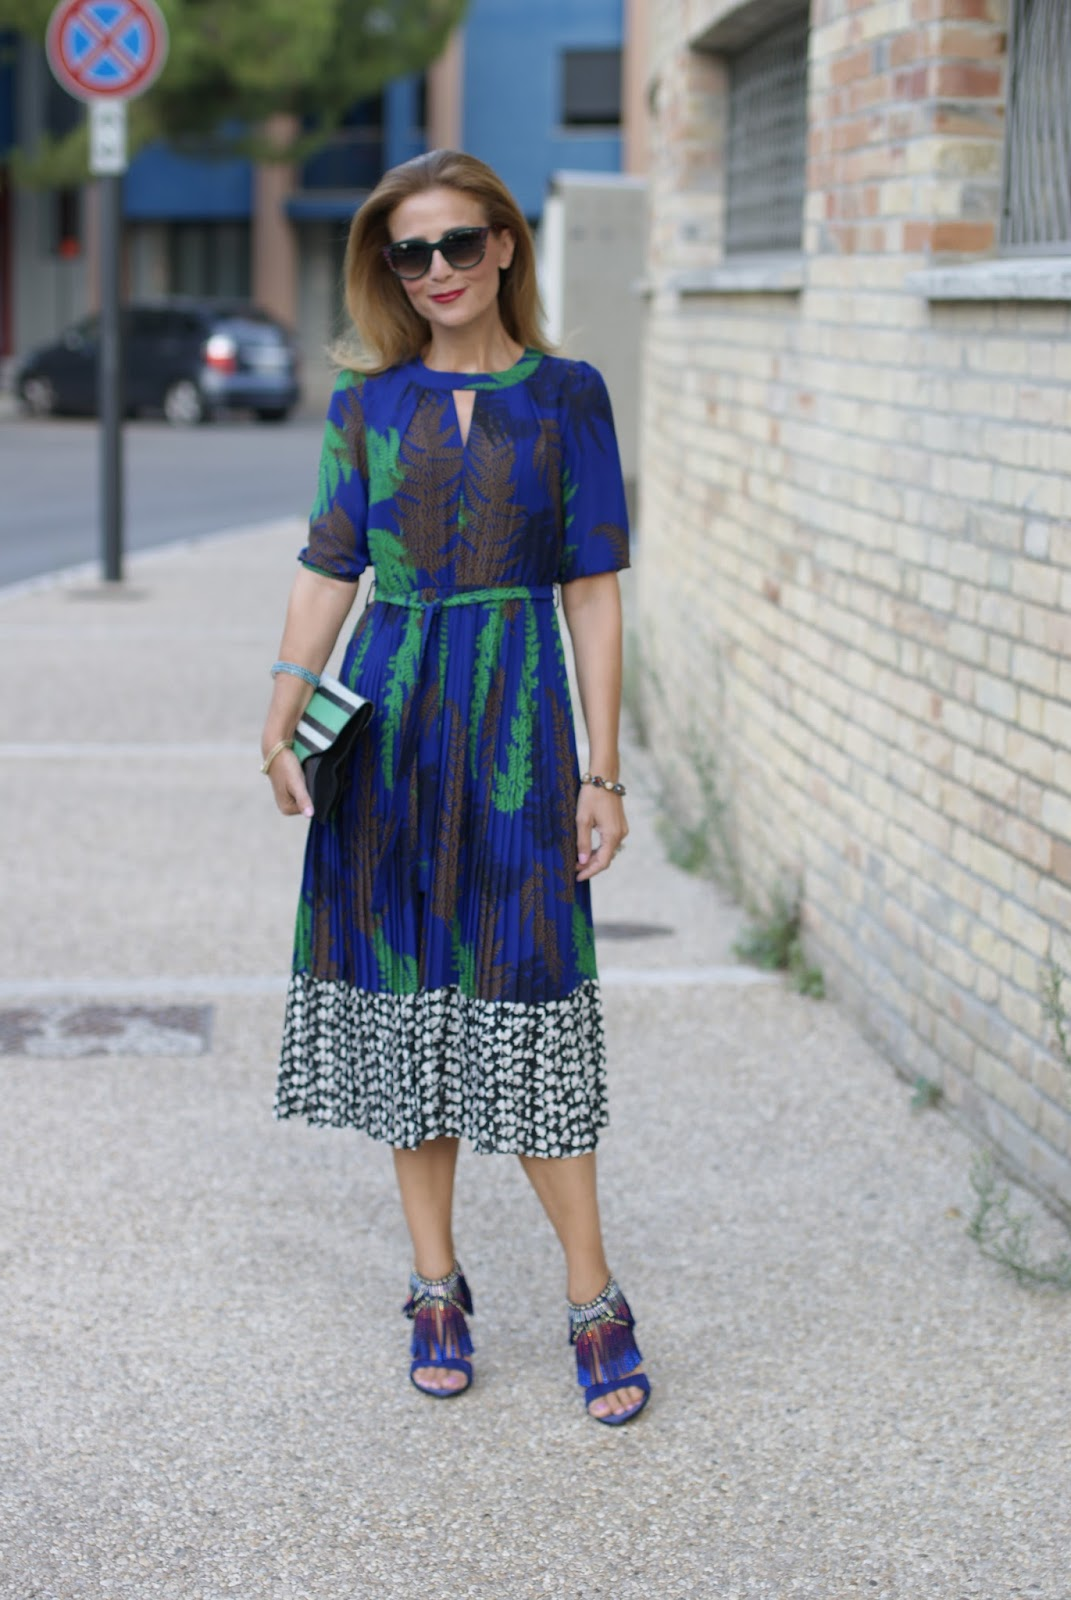 Pleated dress from Dezzal, Thierry Lasry sunglasses found on Giarre on Fashion and Cookies fashion blog, fashion blogger style